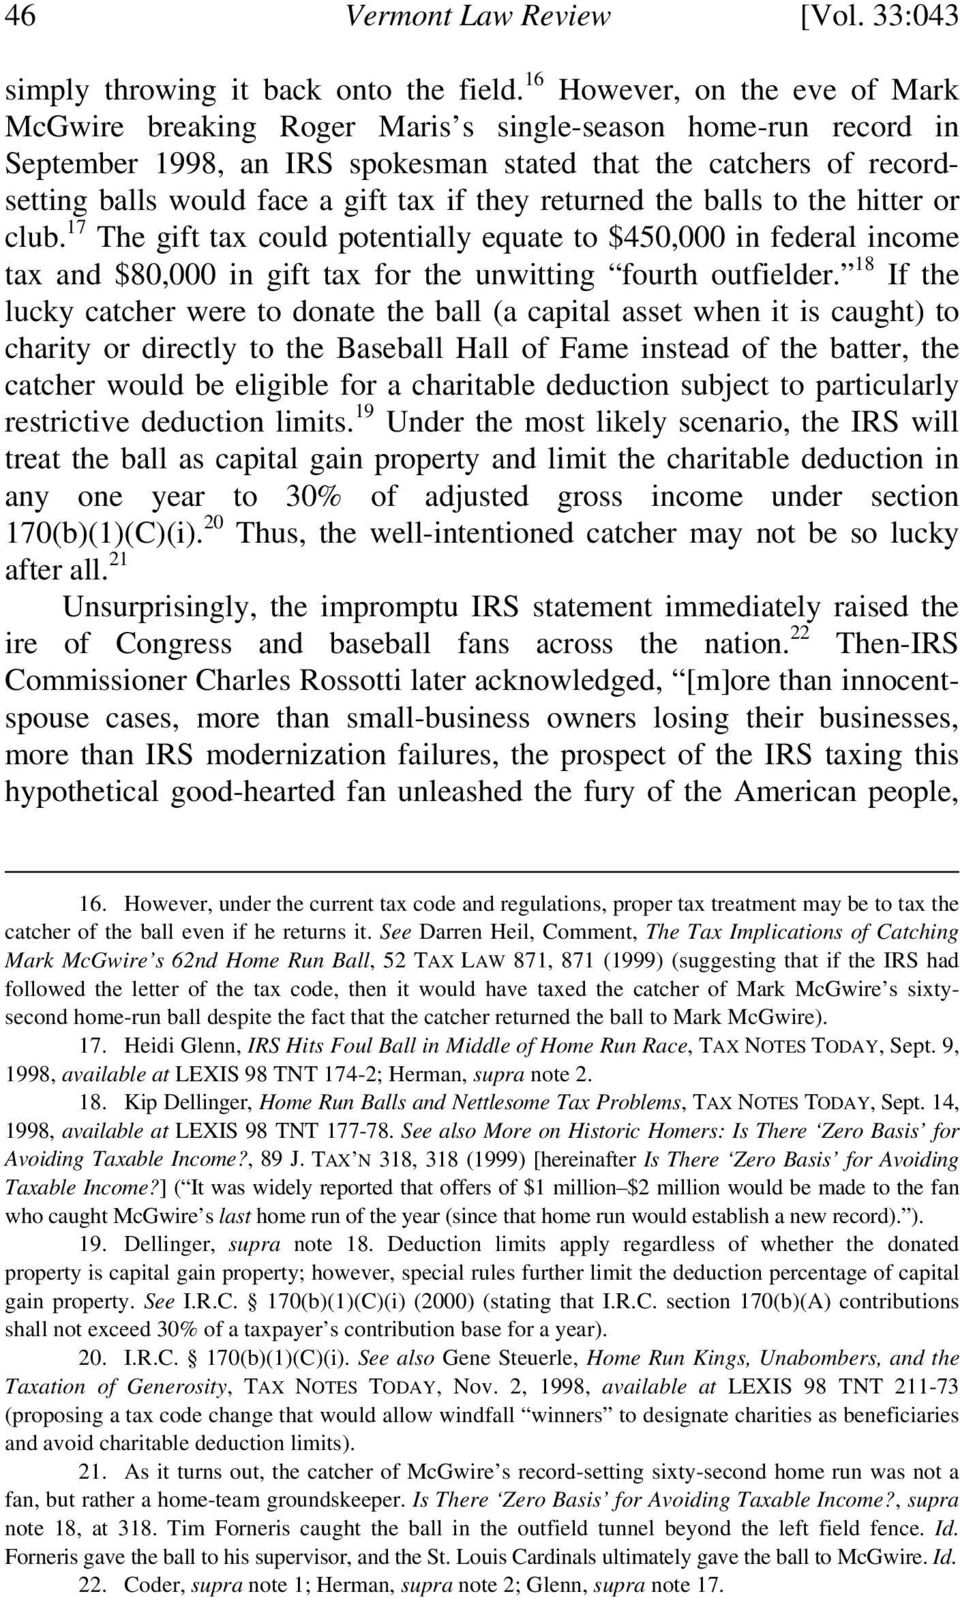 BALL BUSTERS: HOW THE IRS SHOULD TAX RECORD- SETTING BASEBALLS AND ...